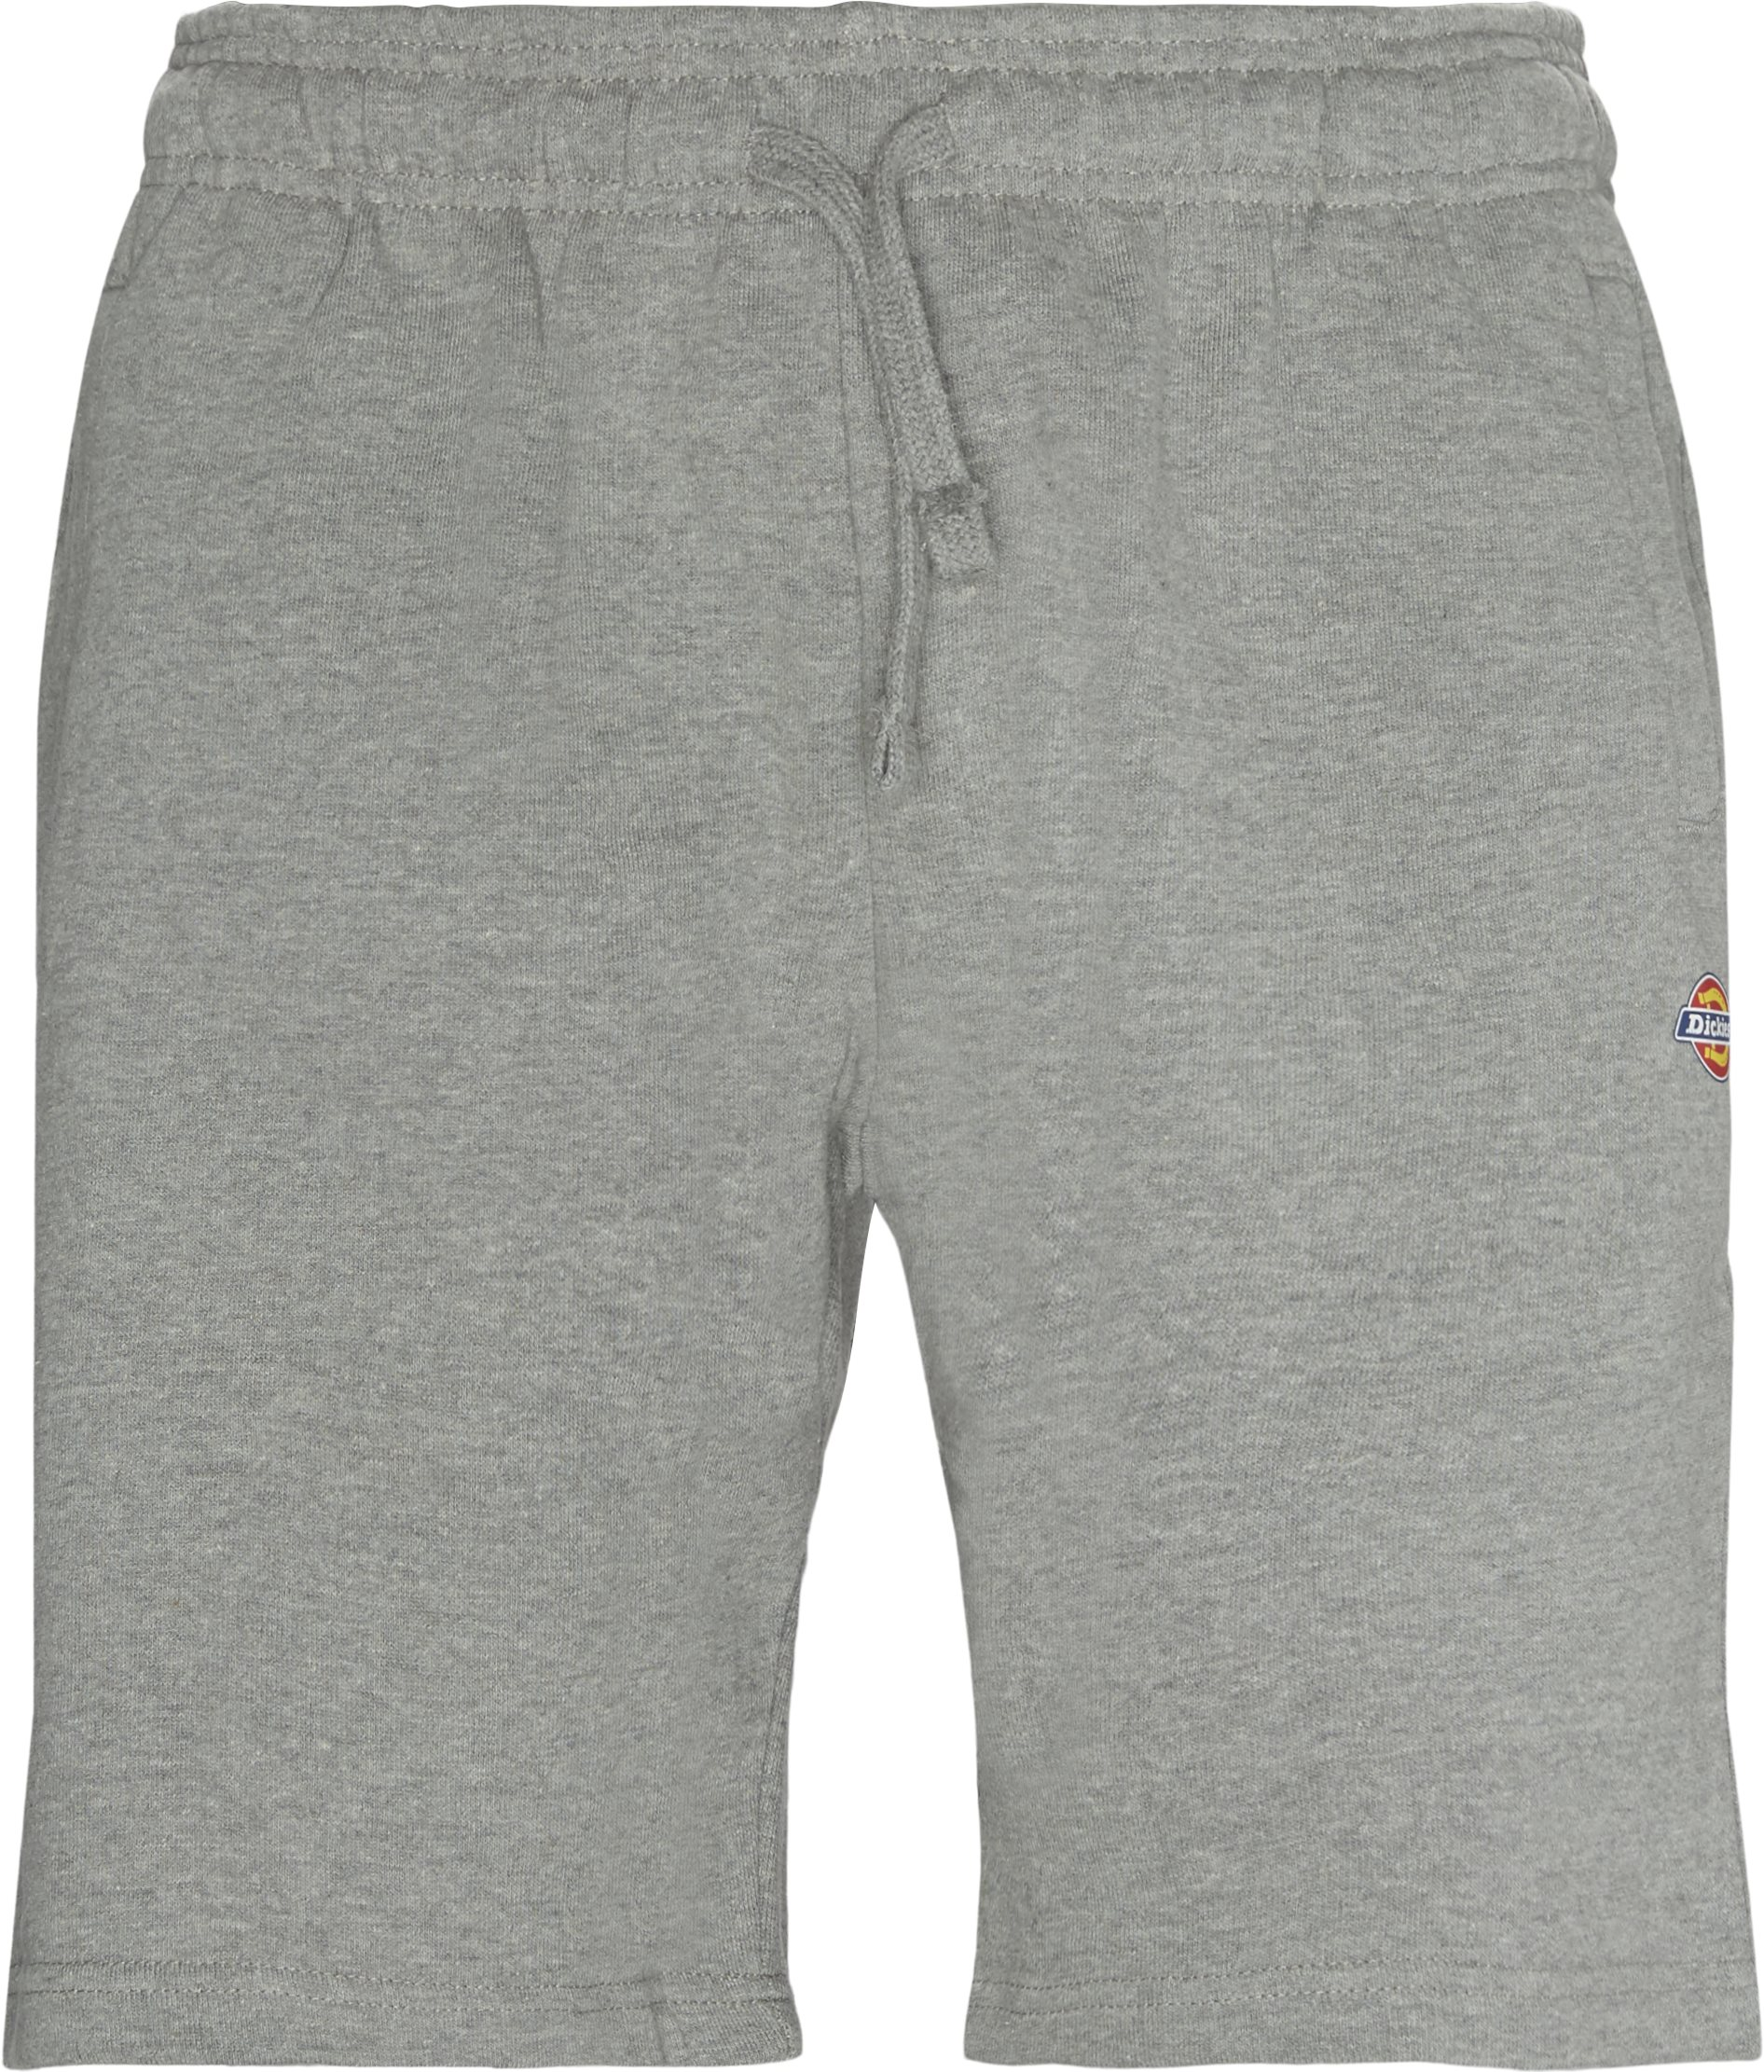 Glen Cove Jersey Shorts - Shorts - Regular - Grå